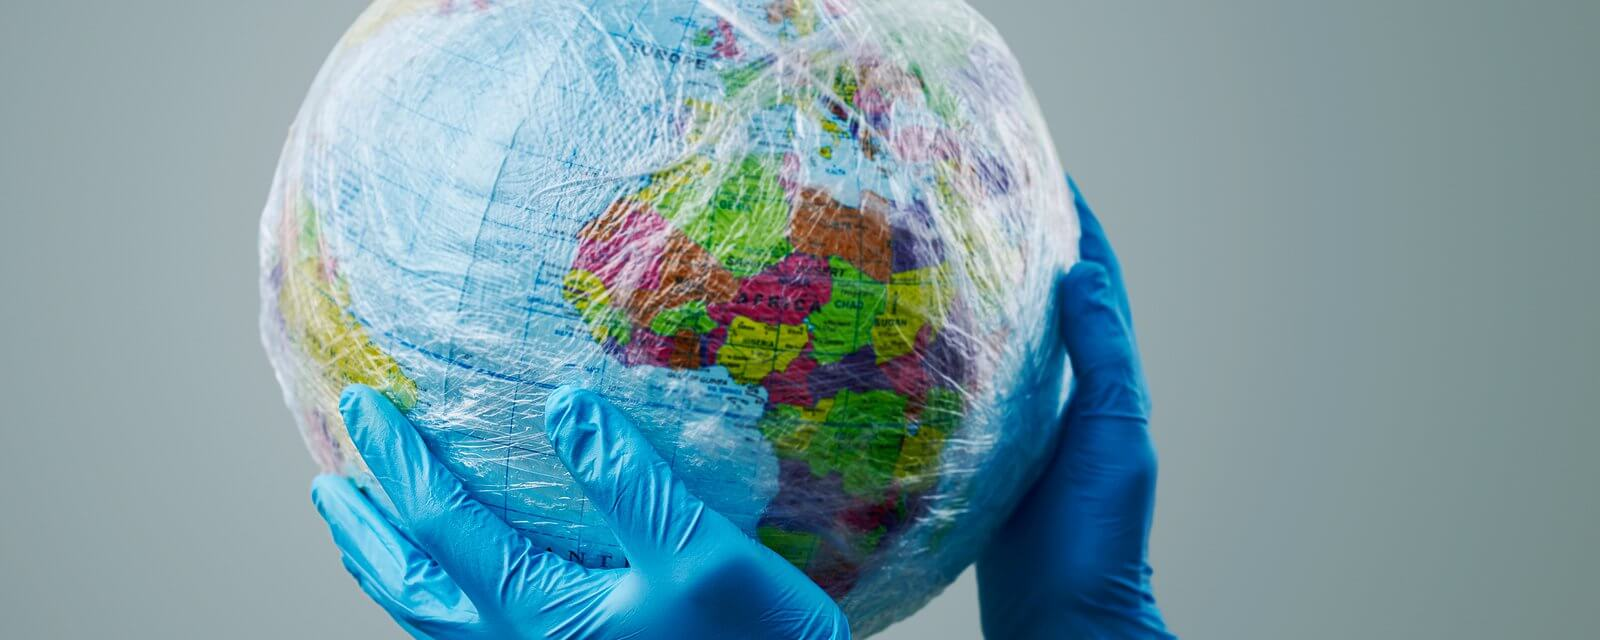 a doctor wearing blue surgical gloves holding a world globe wrapped in plastic, depicting the plastic contamination or the protection against the epidemic infectious diseases or the air pollution